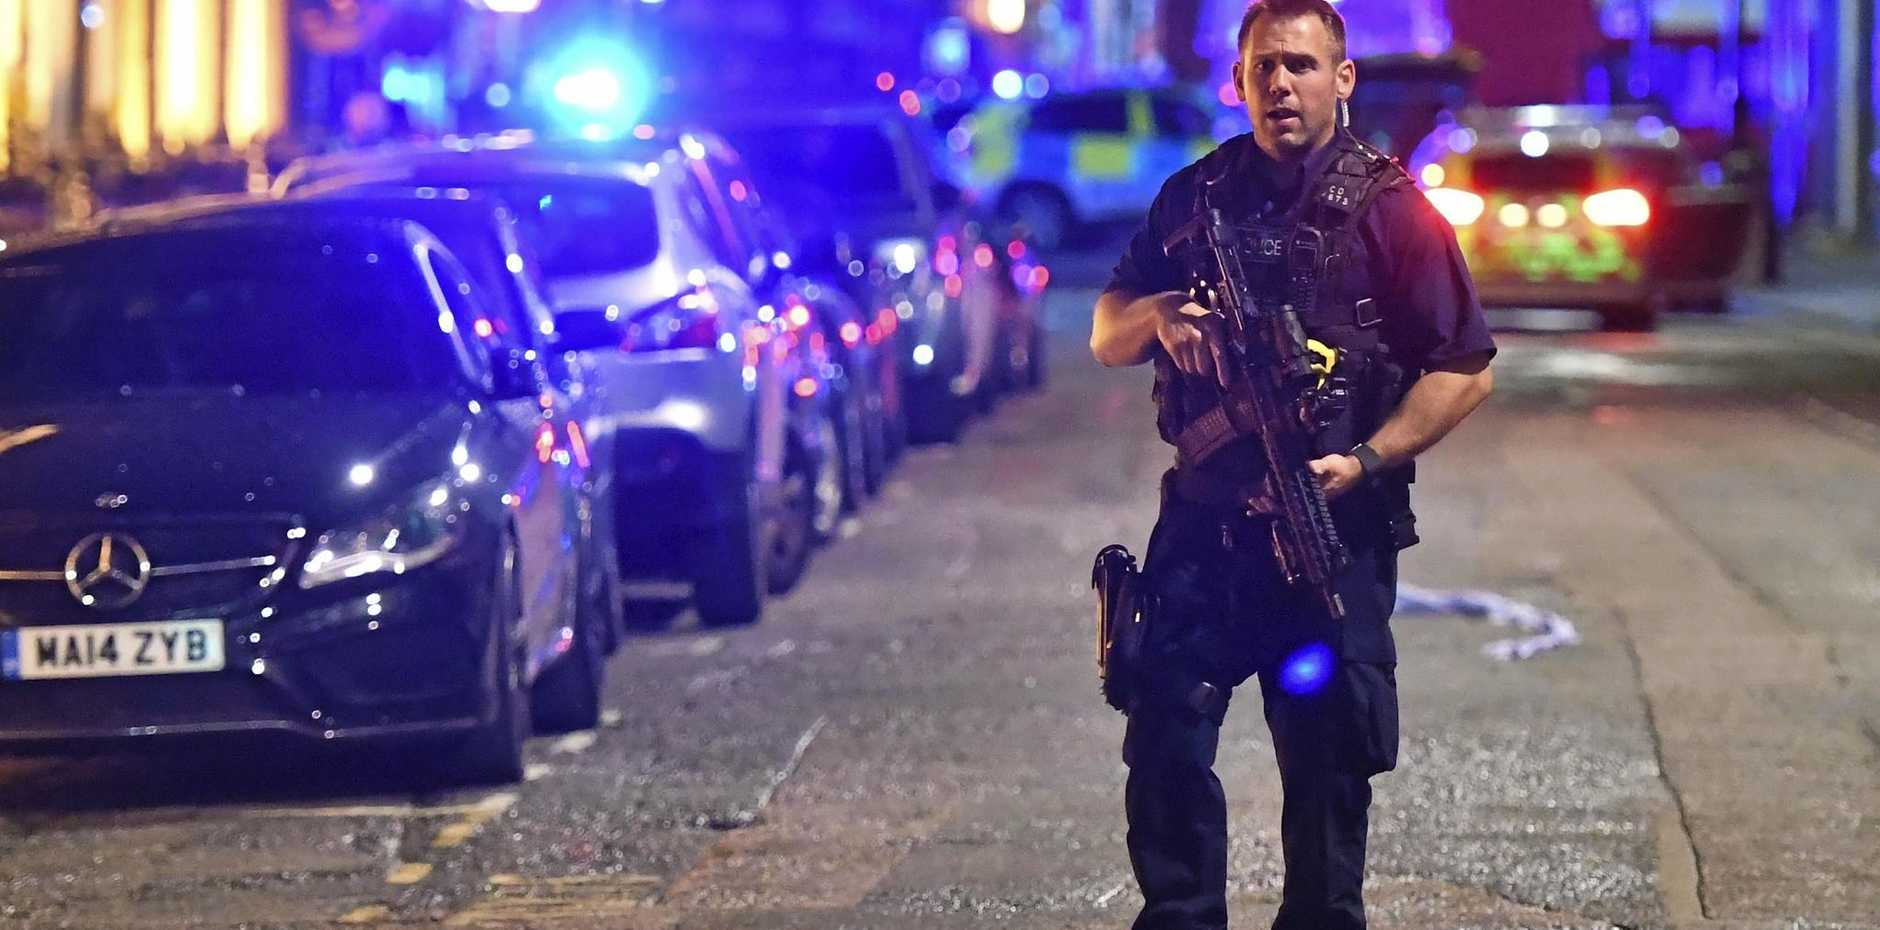 An armed police officer stands on Borough High Street as police deal with an incident on London Bridge on Saturday, June 3.